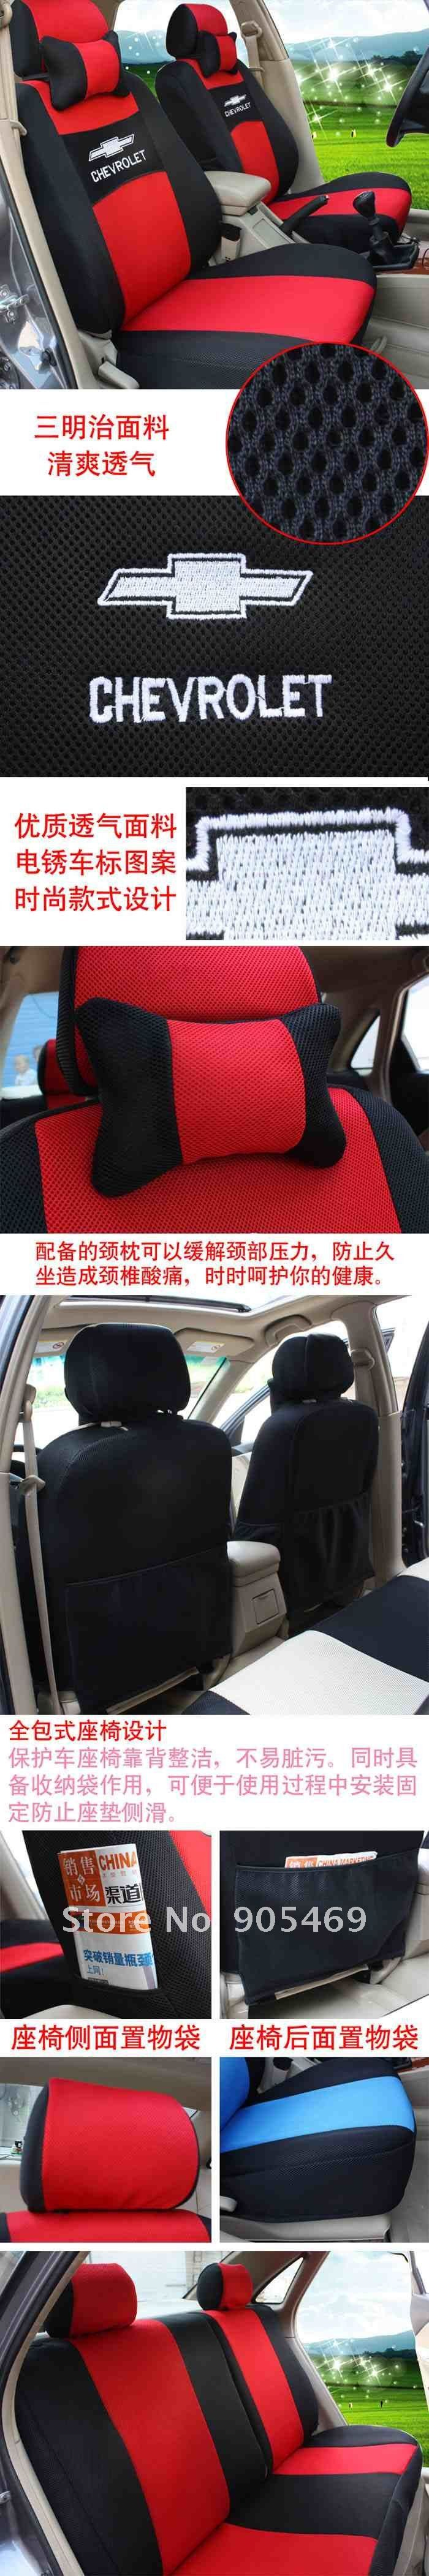 Seat cover idea for knuckles aka my red chevy sonic